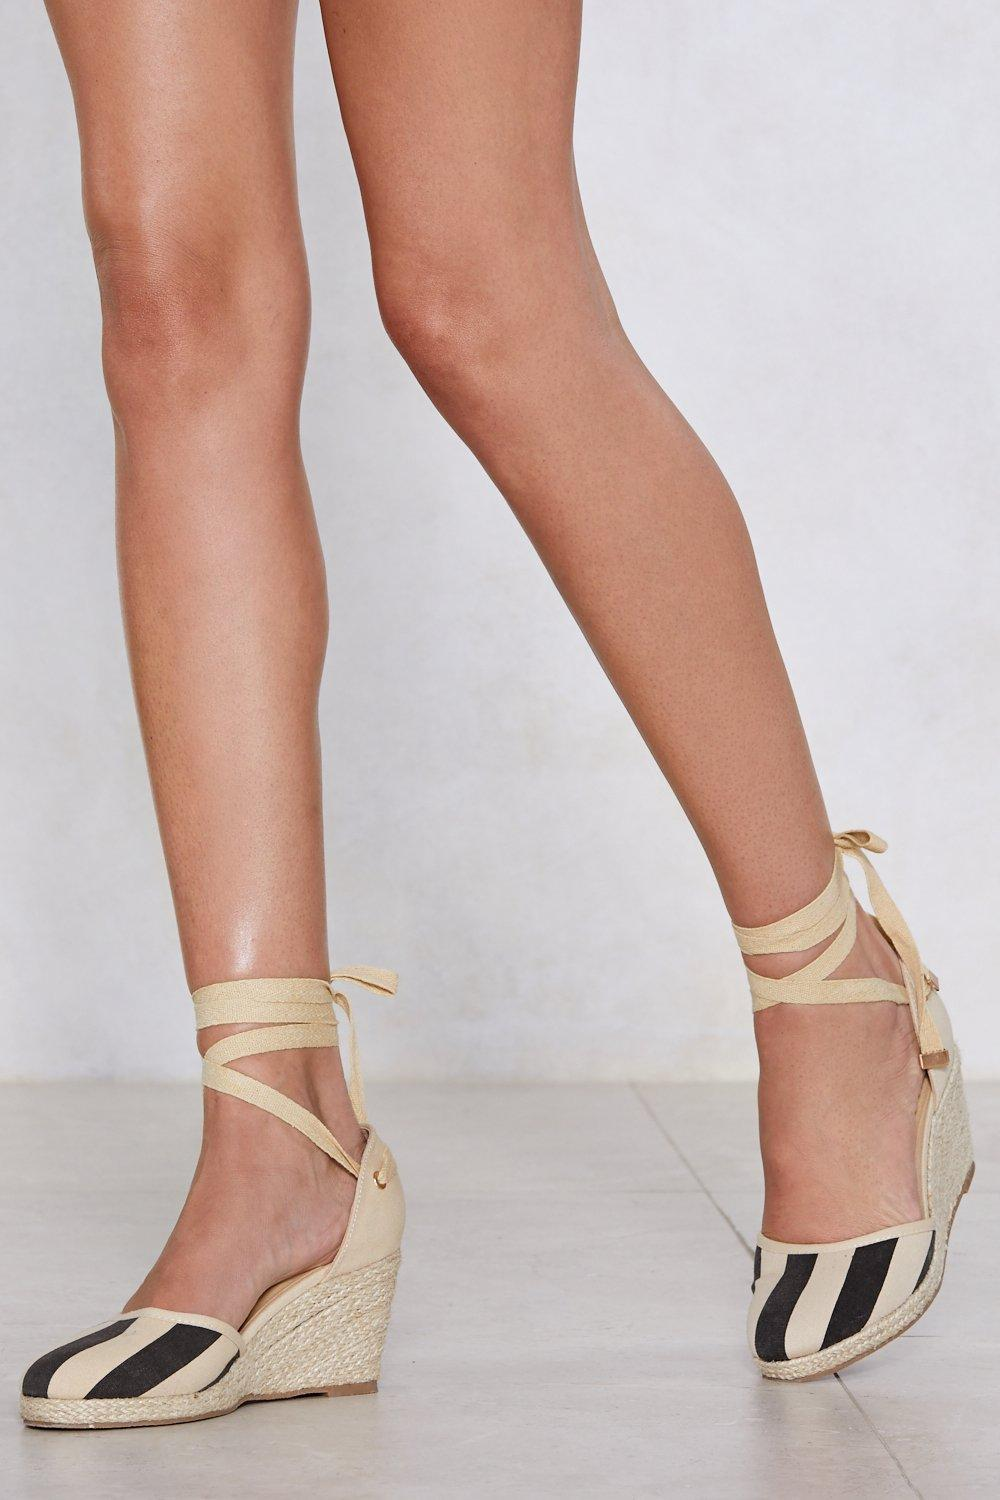 clearance prices It's All Stripe For Some Espadrille Wedge enjoy online Psb0AuA